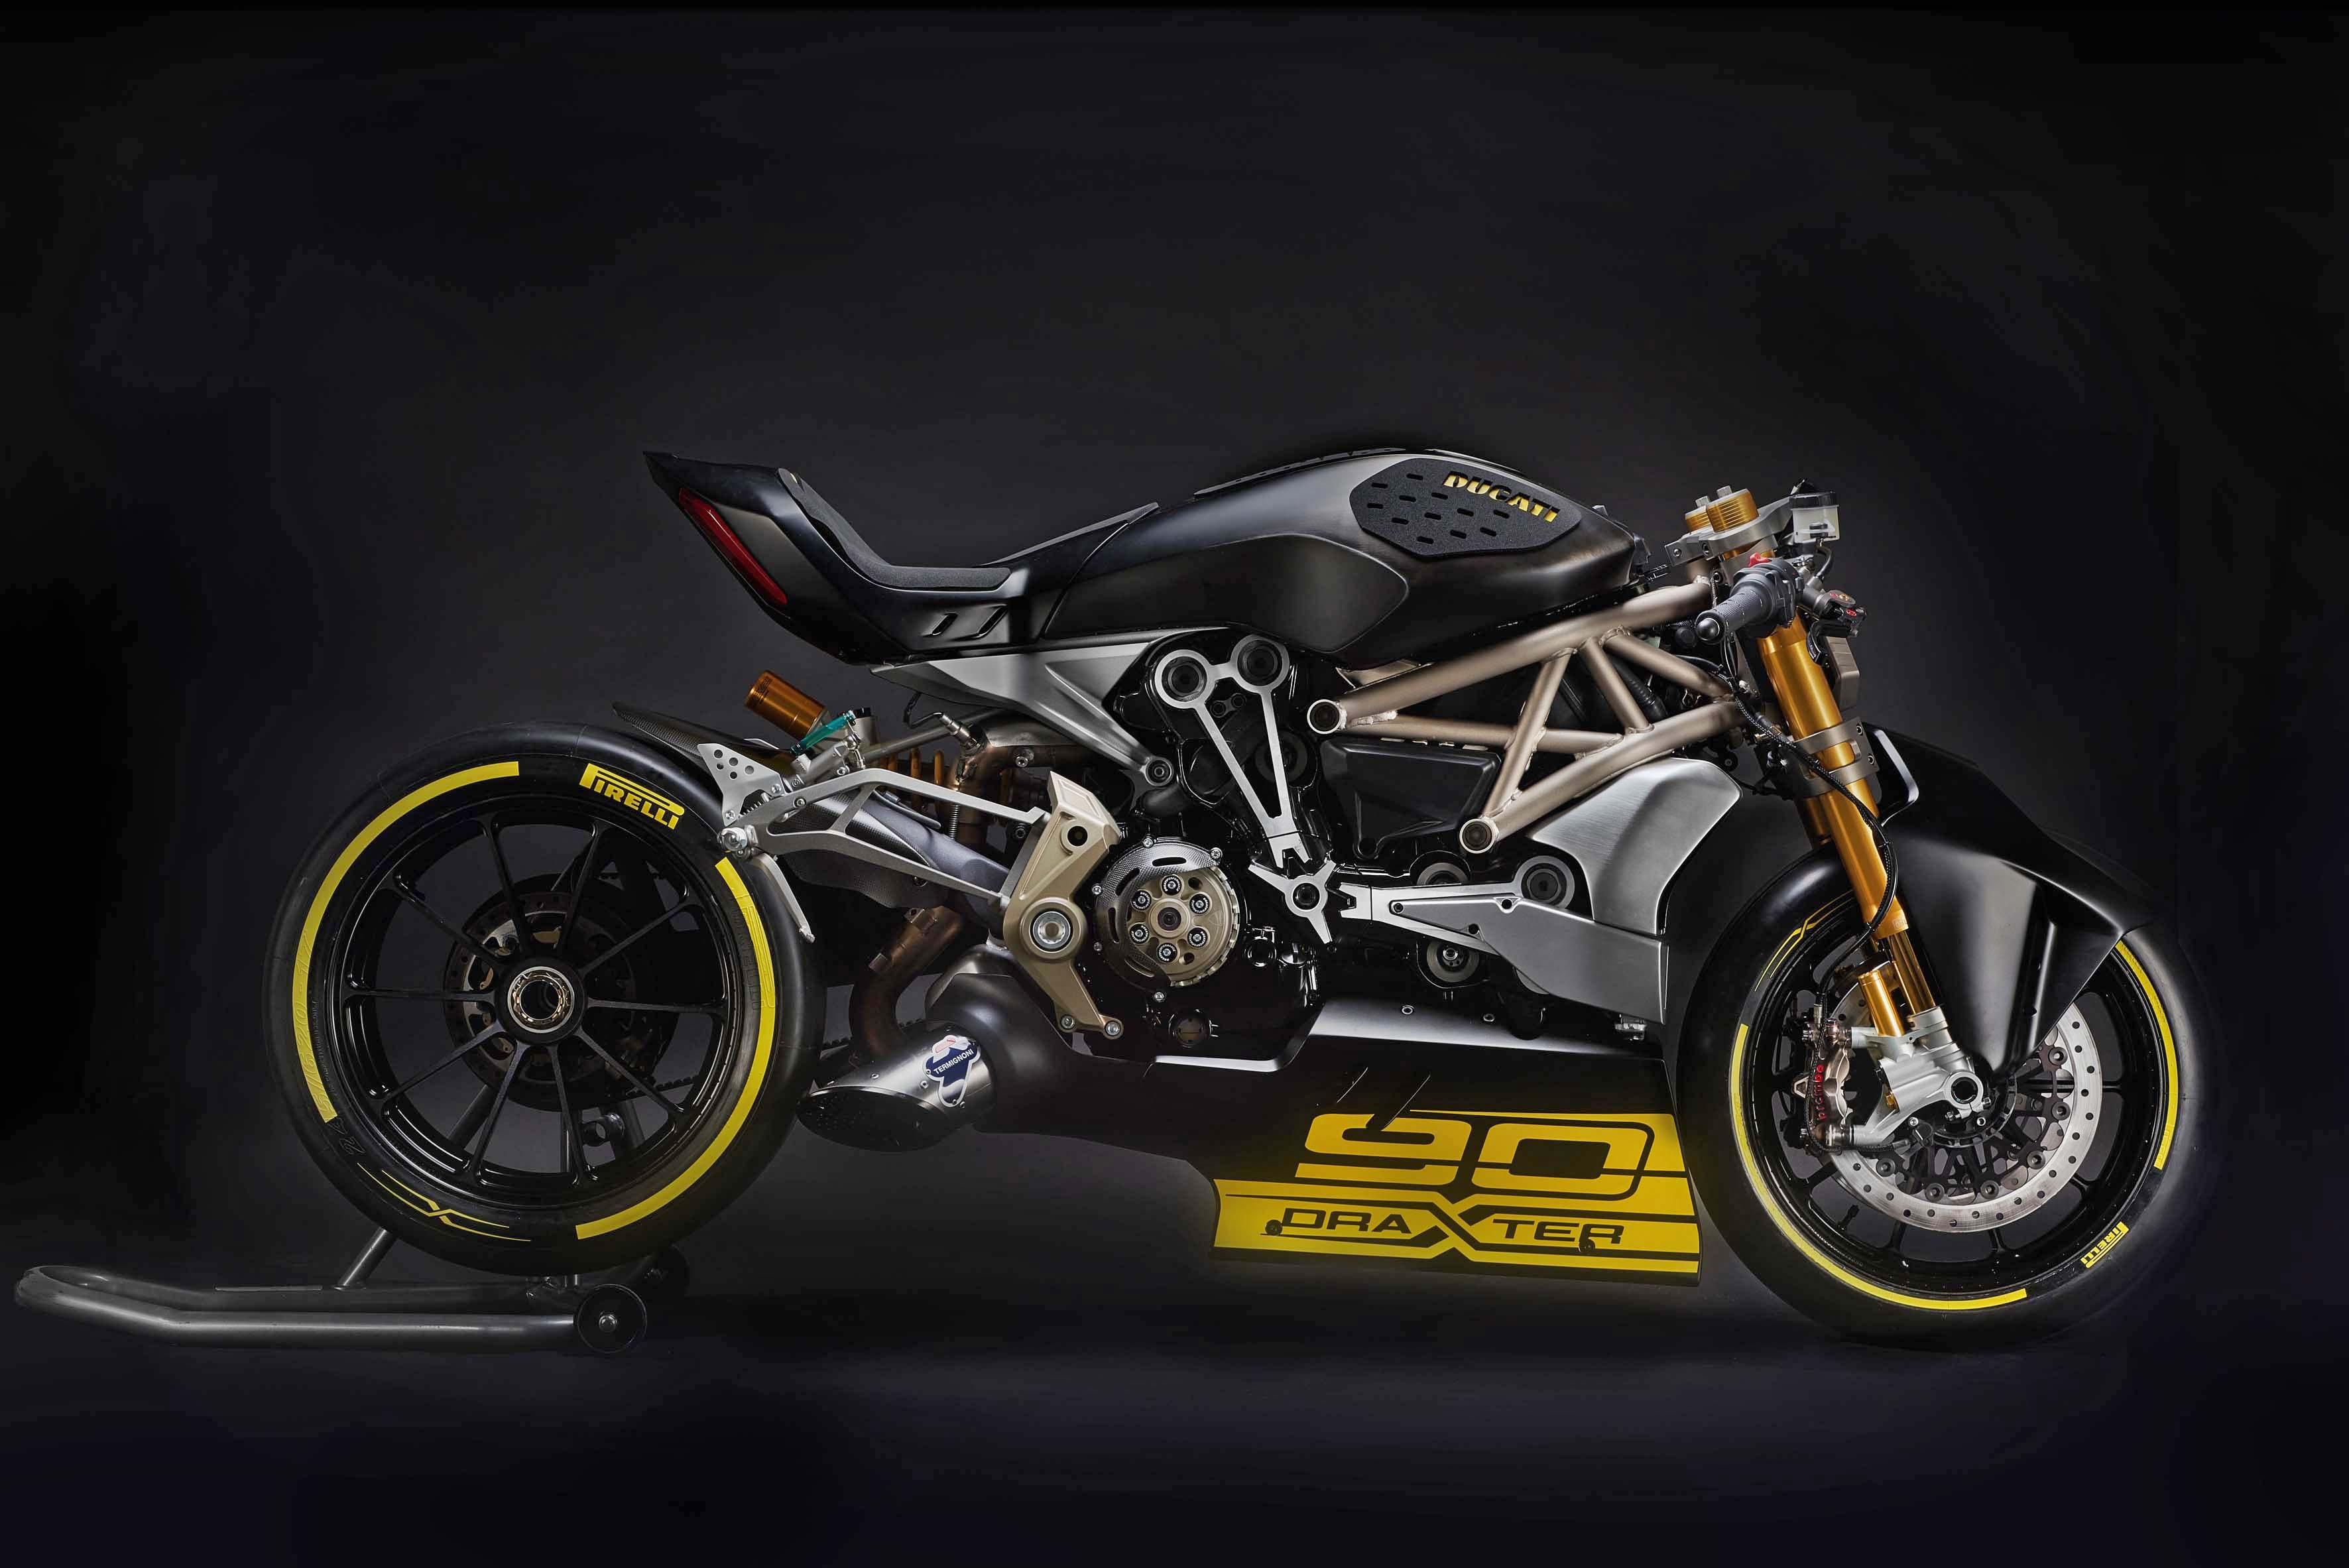 Ducati Bikes Wallpapers: Ducati Draxter XDiavel Concept, HD Bikes, 4k Wallpapers